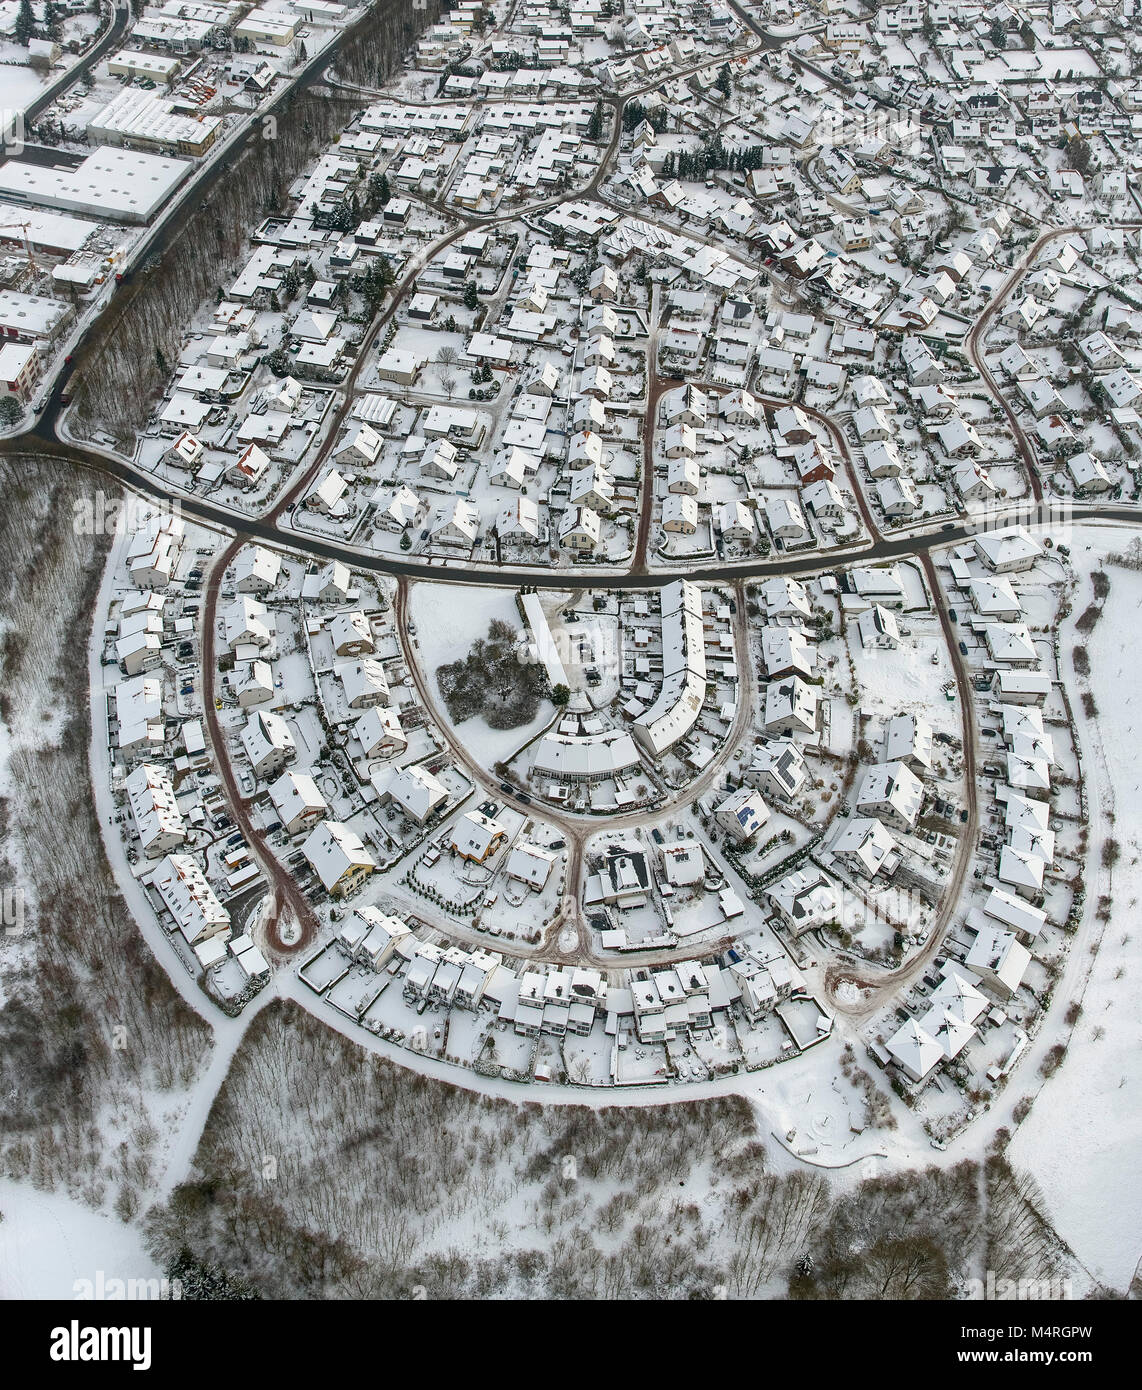 Aerial view, single-family home settlement Anton-pity-way single-family semi-detached houses in the snow, Bergheim, - Stock Image